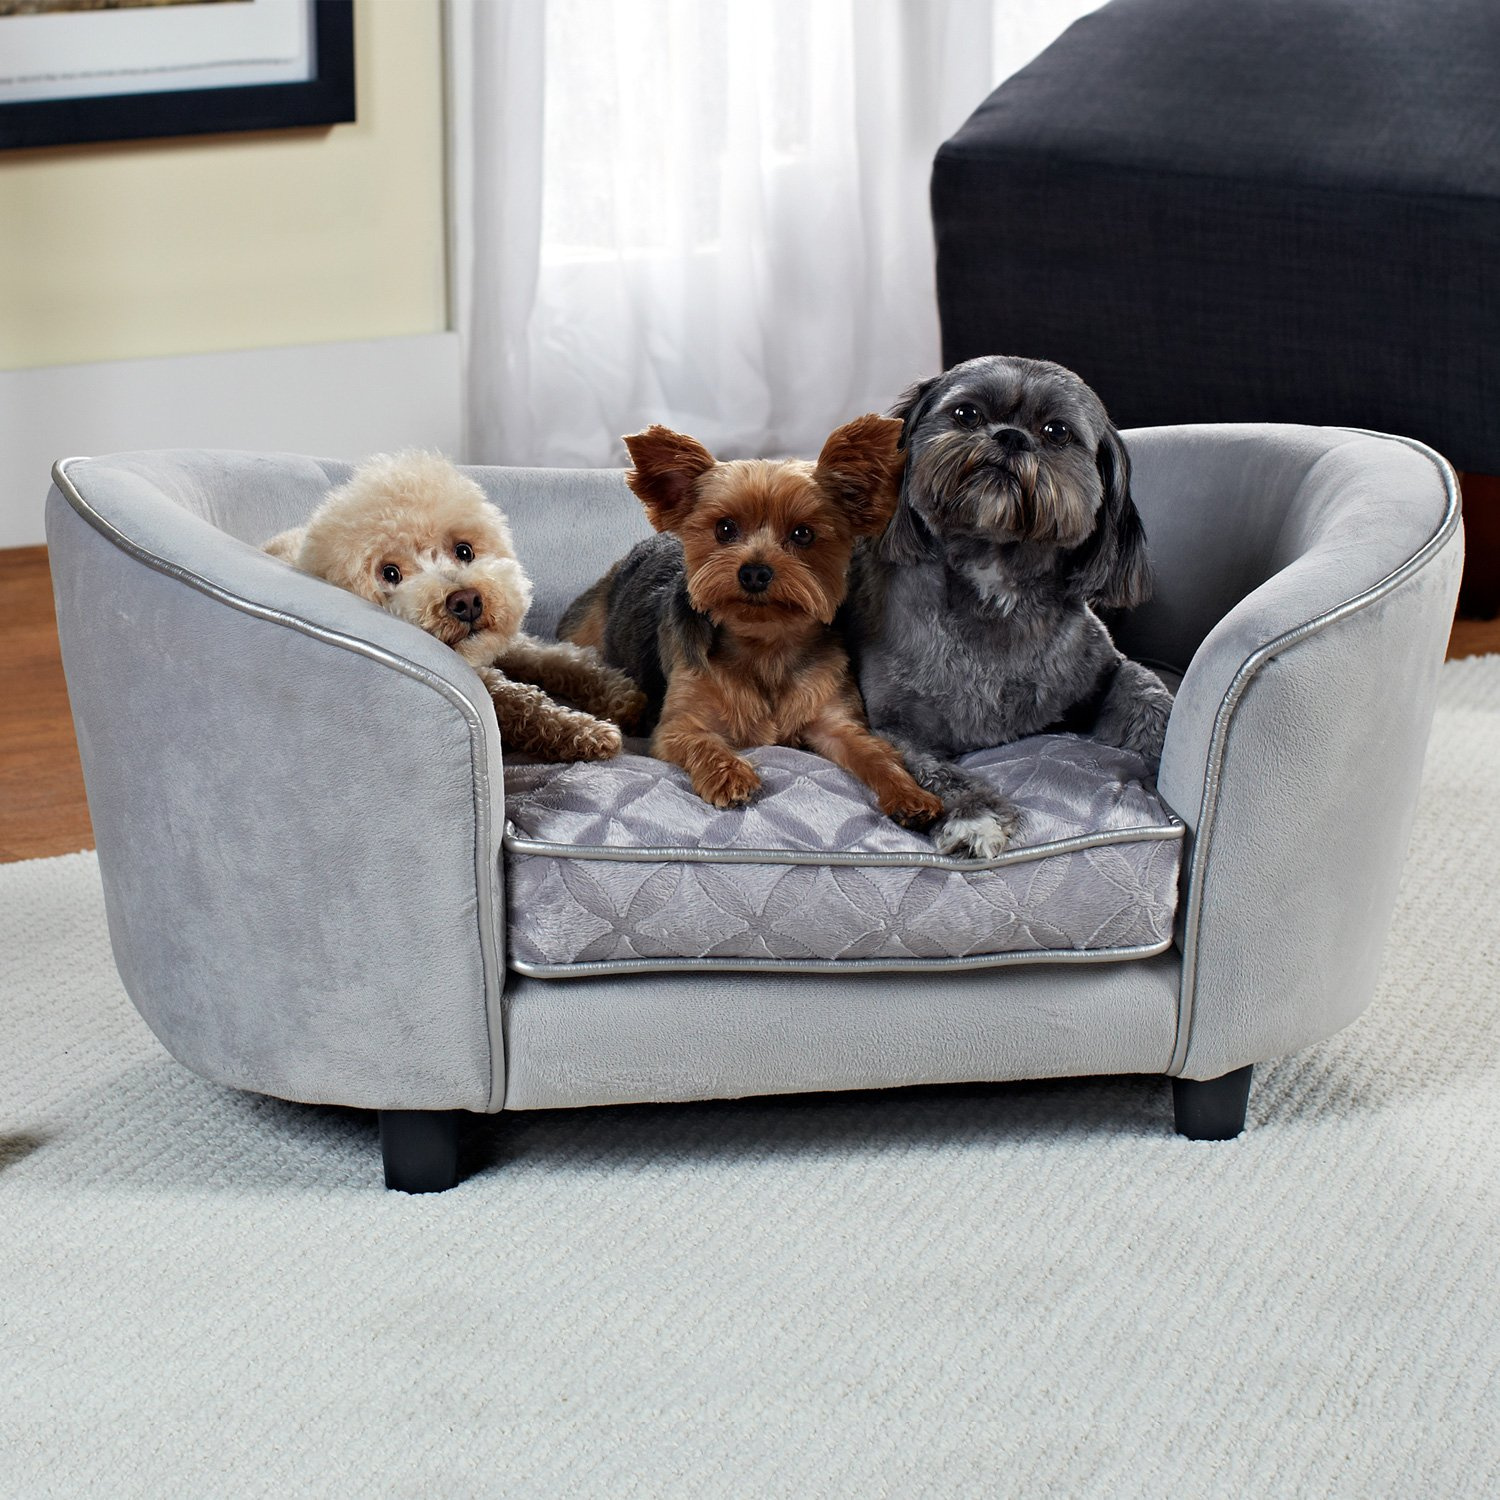 Enchanted Home Pet Furniture eases your dog into a luxurious cushion that  engulfs them in complete